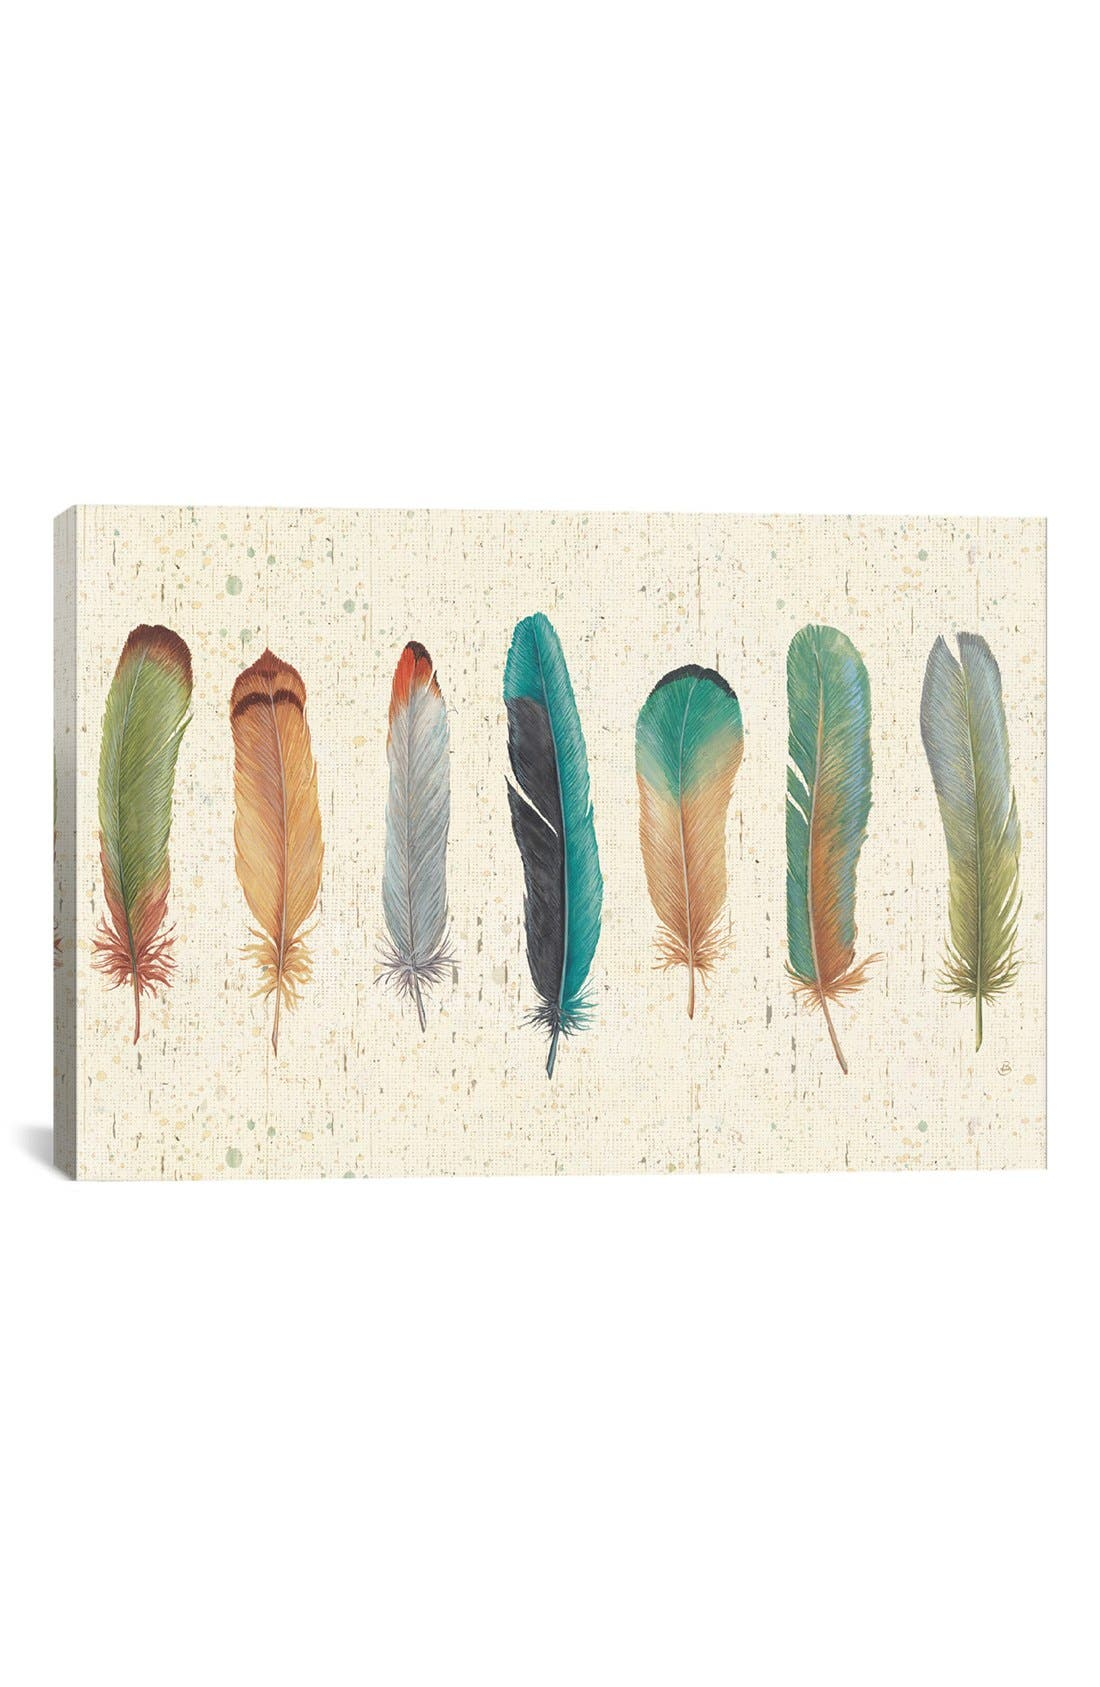 'Feather Tales VII' Giclée Print Canvas Art,                         Main,                         color, 250